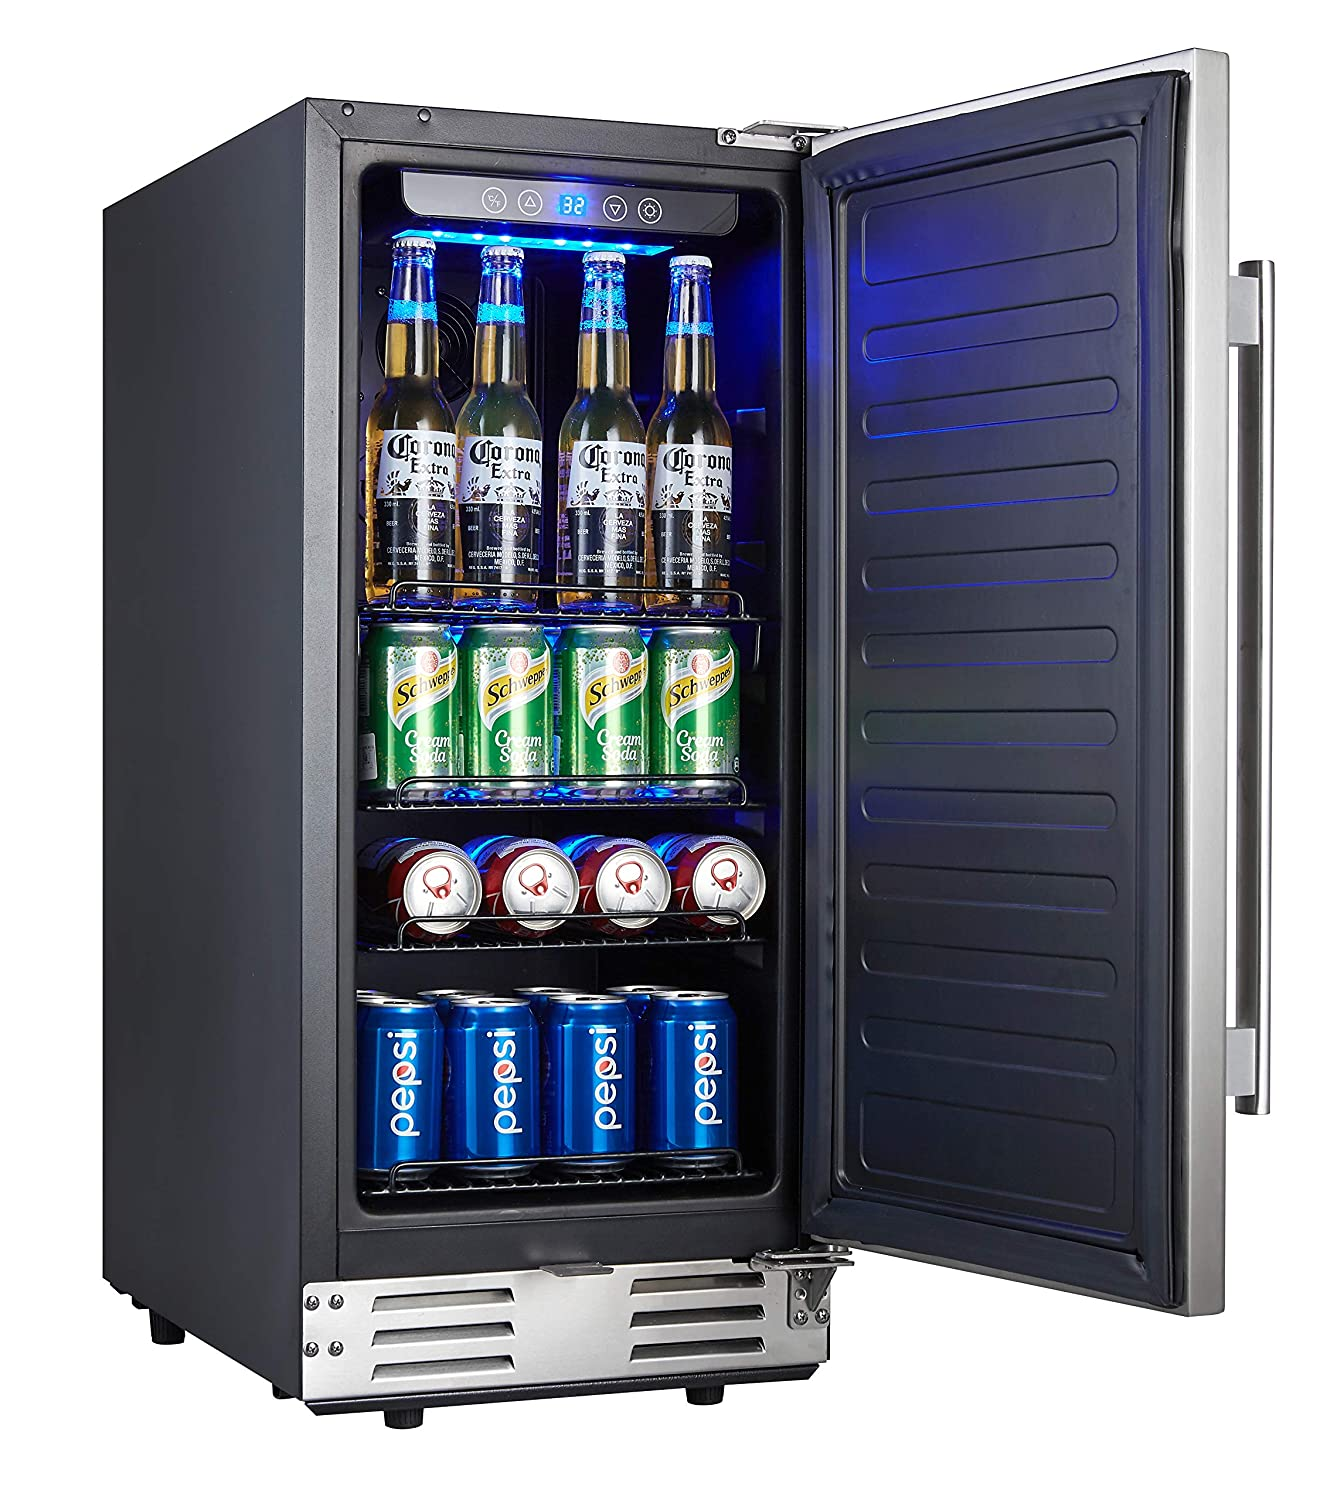 Kalamera 15 Inch Stainless Steel Beverage Cooler – Soda and Beer Refrigerator Chills Drinks at 32-41 Degrees – Drinks Fridge for Home and Commercial Use